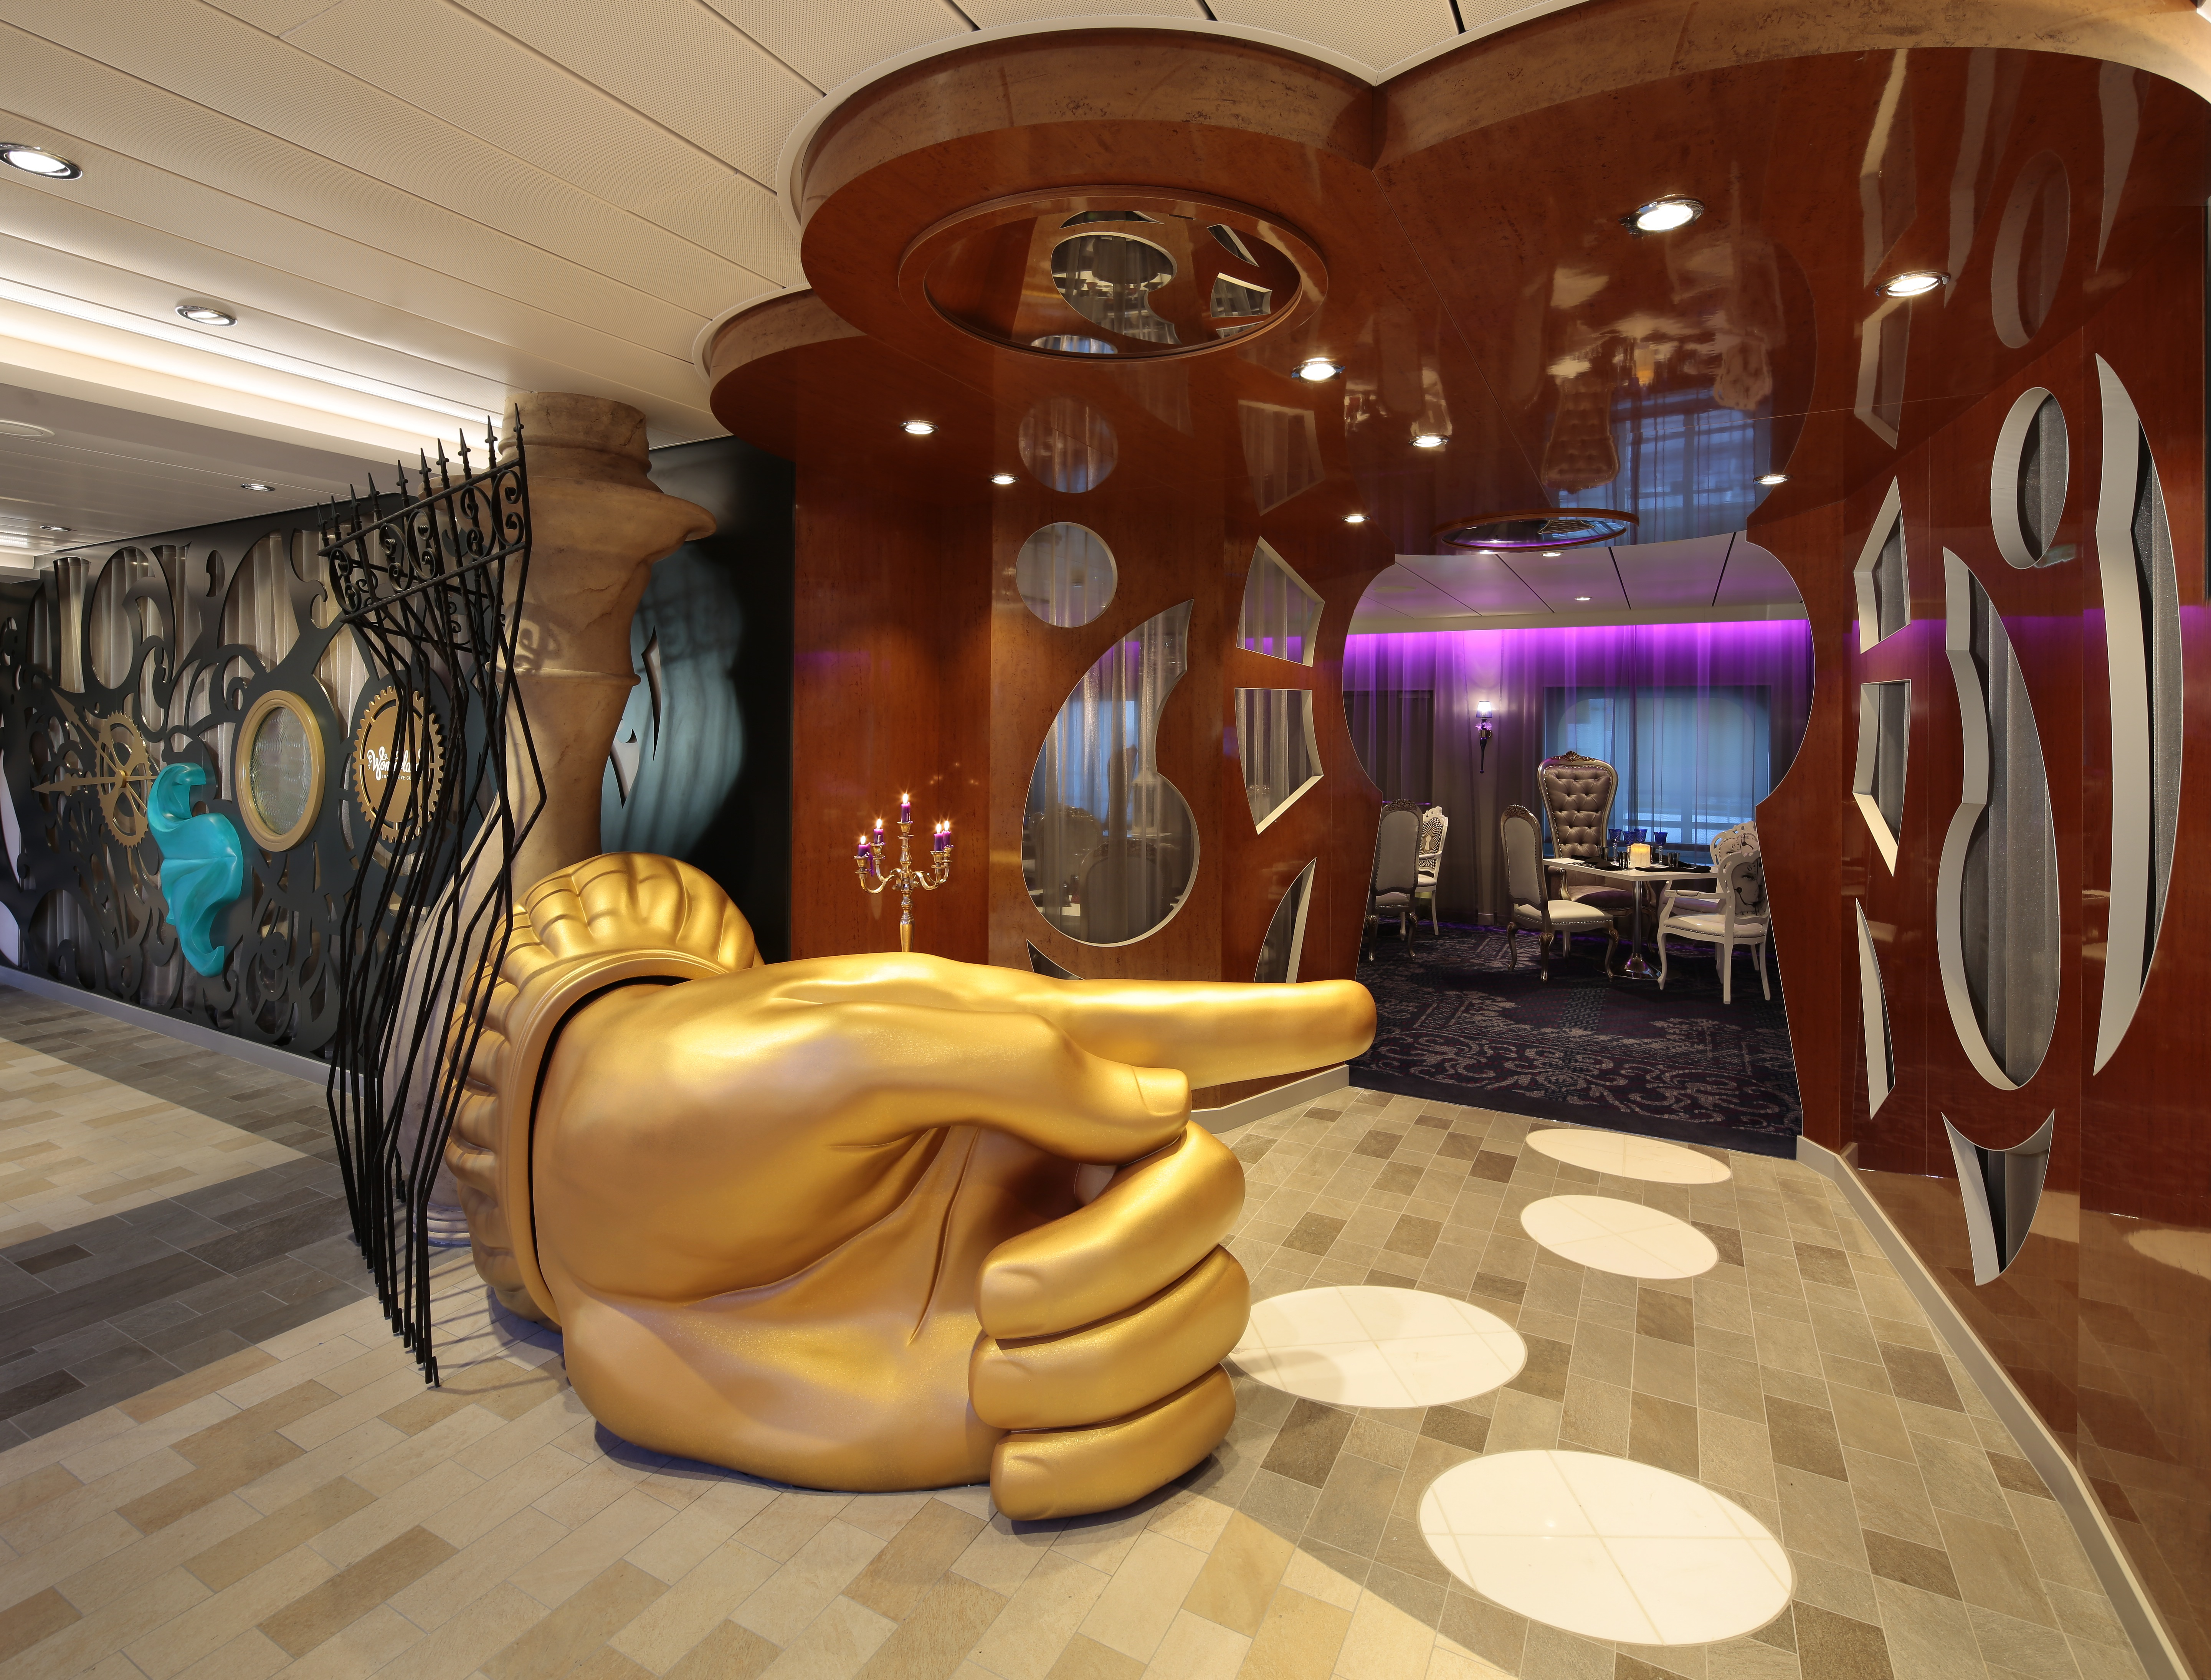 Royal Caribbean International Quantum of the Seas Interior Wonderland 3F.jpg